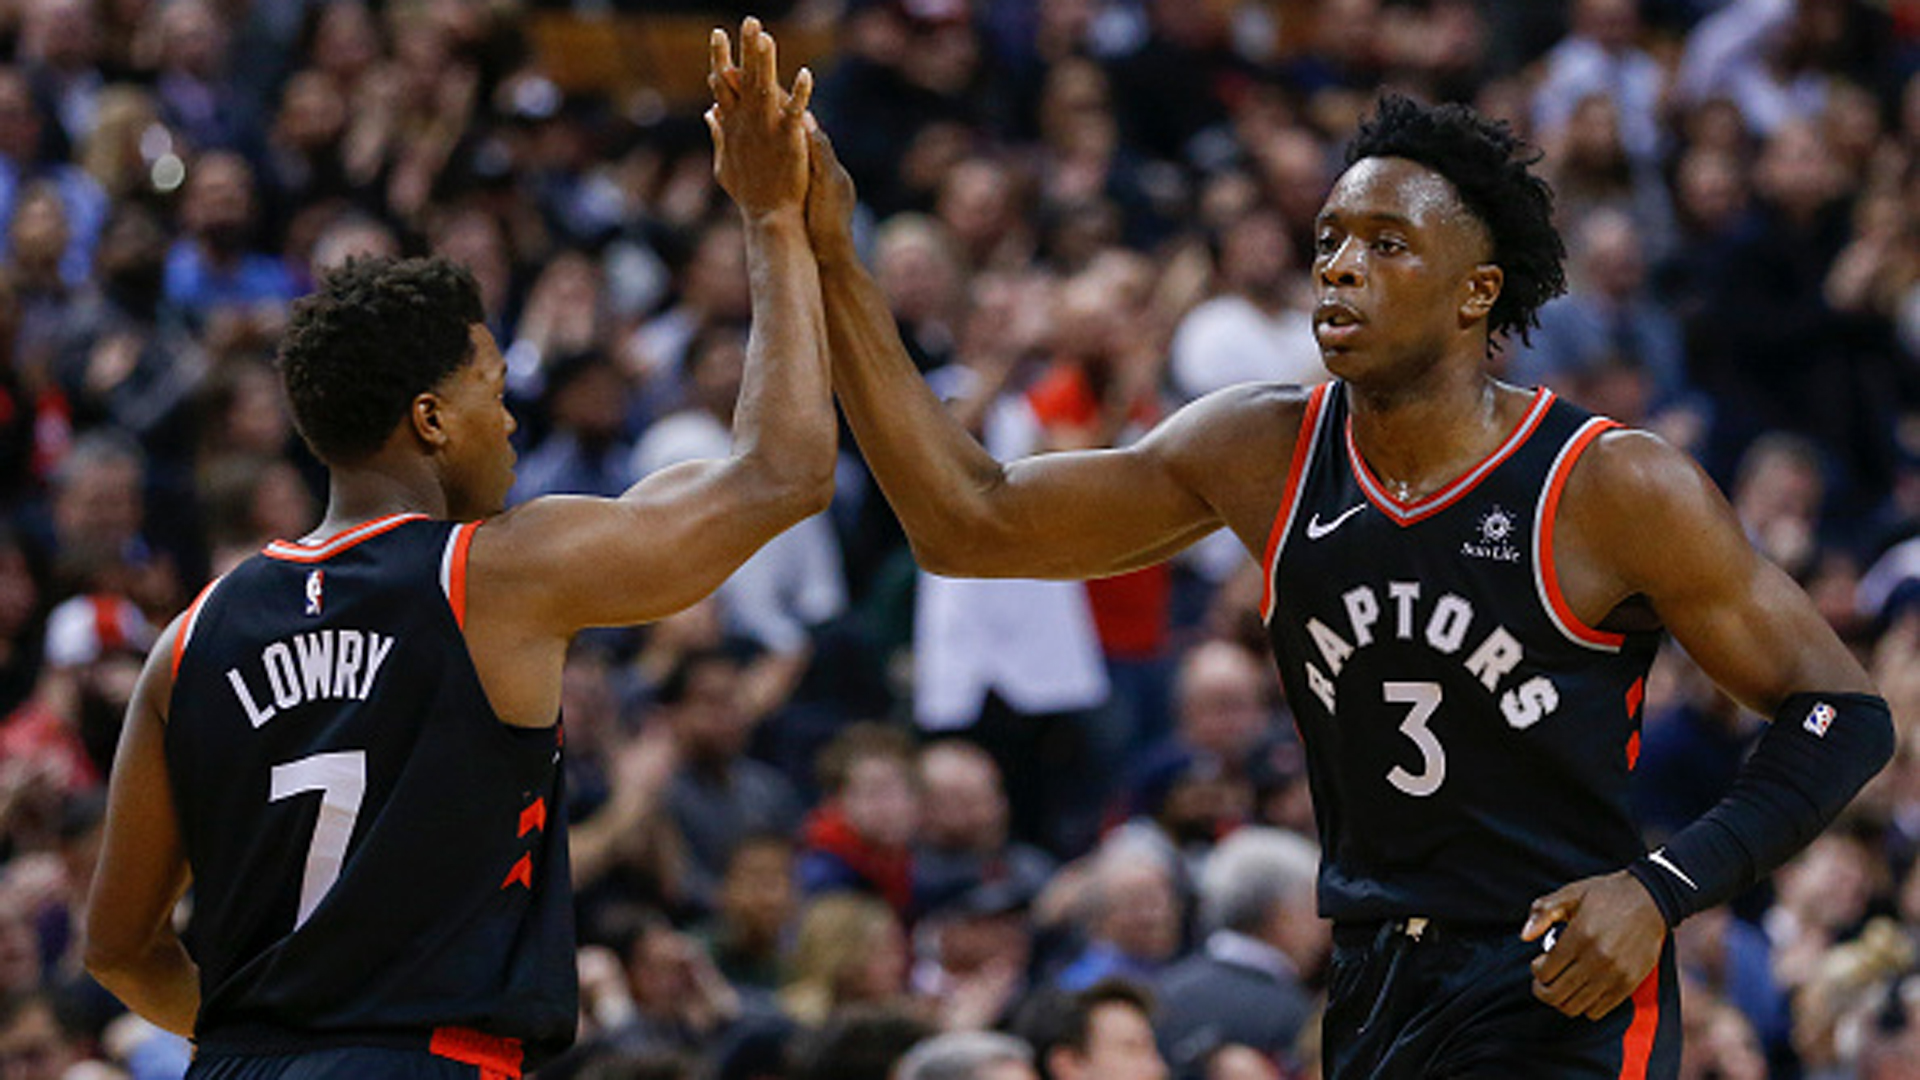 Anunoby rising to the challenge for Raptors while Lowry continues to lead